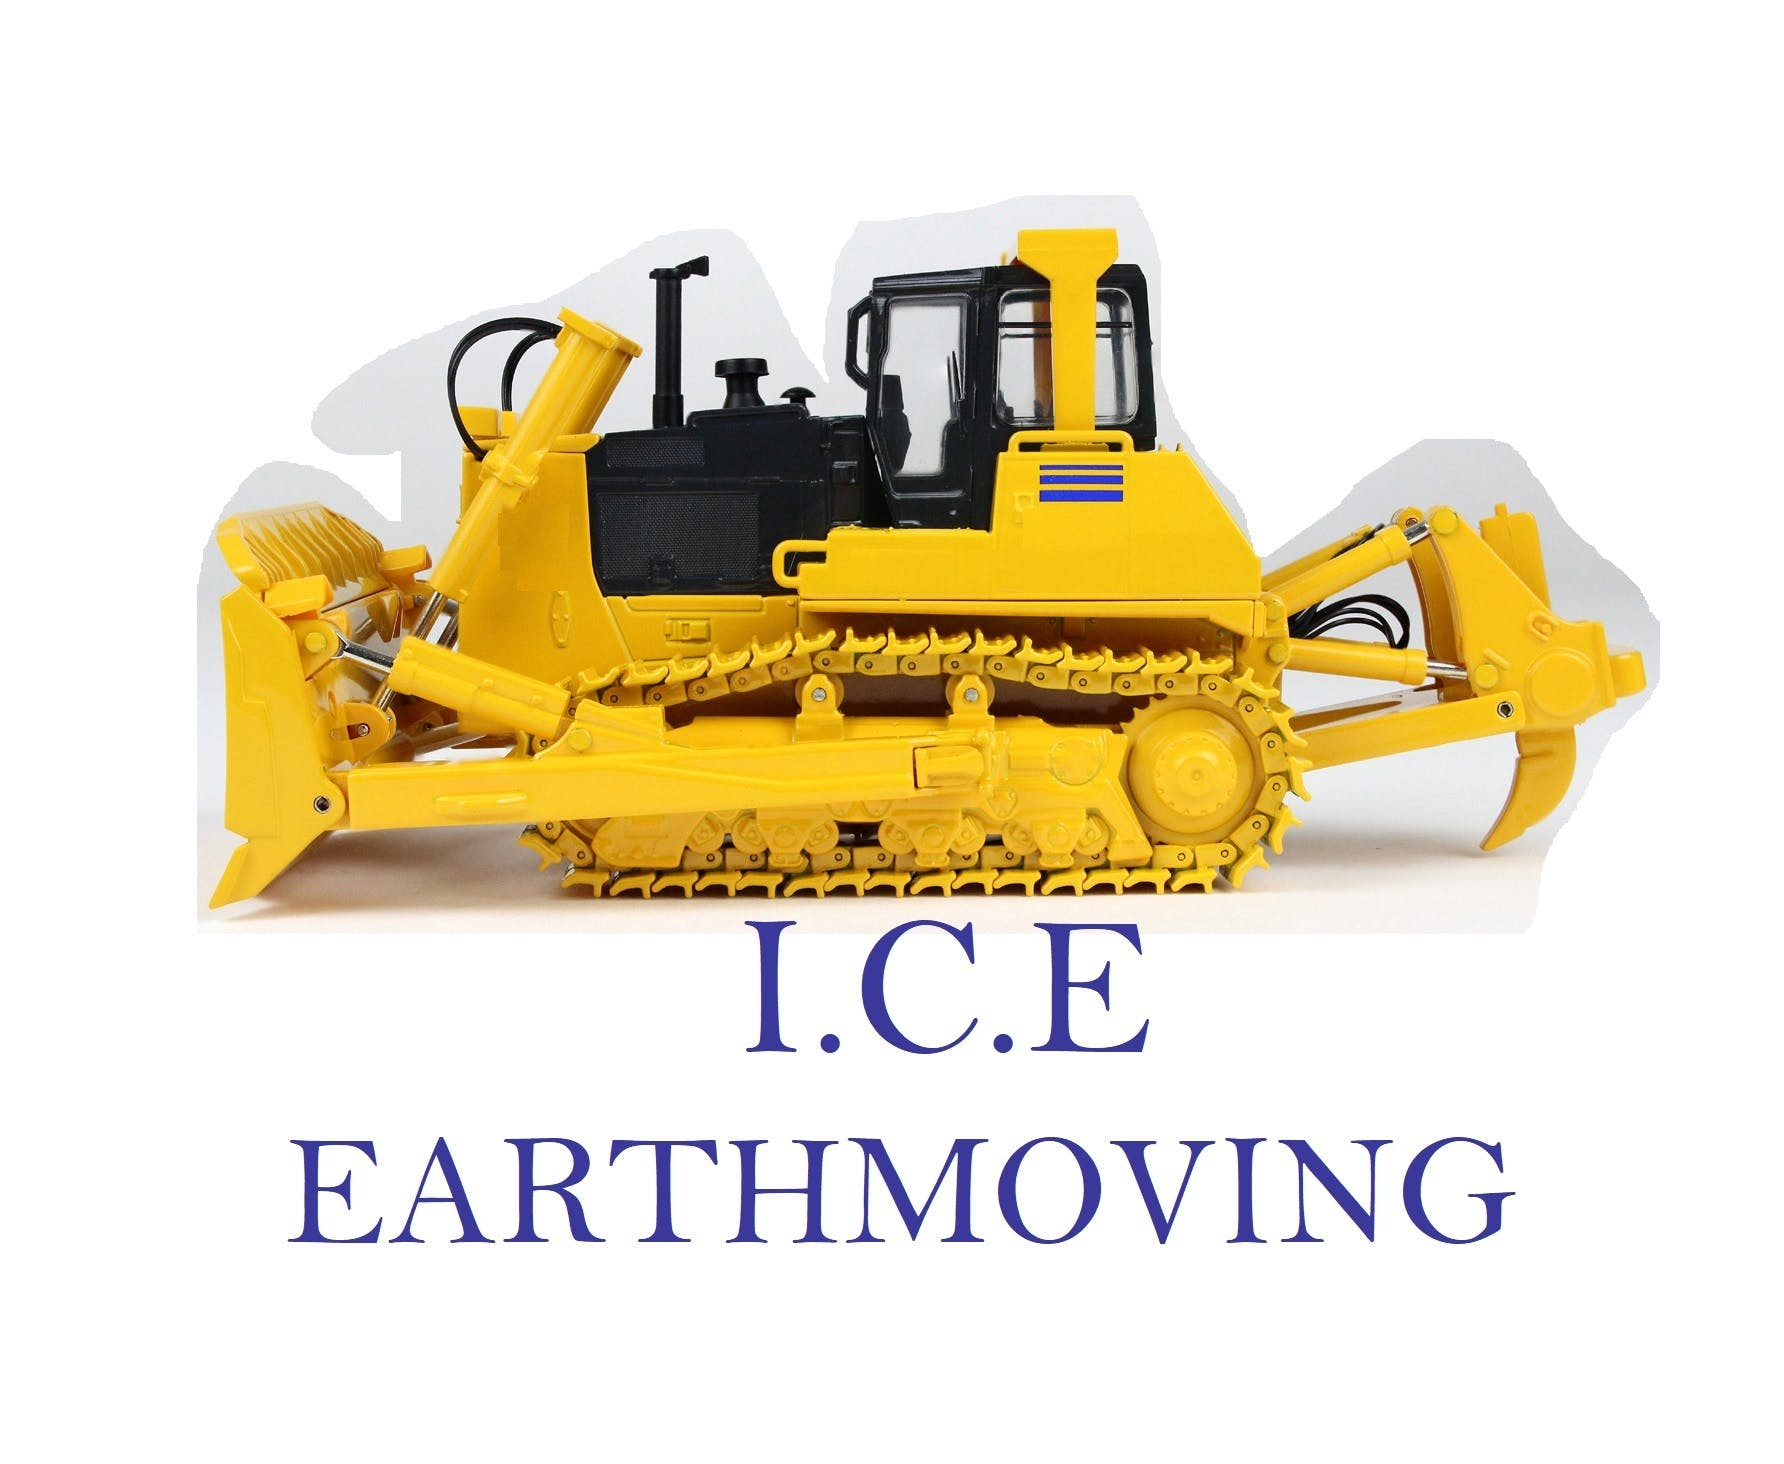 ICE Earthmoving